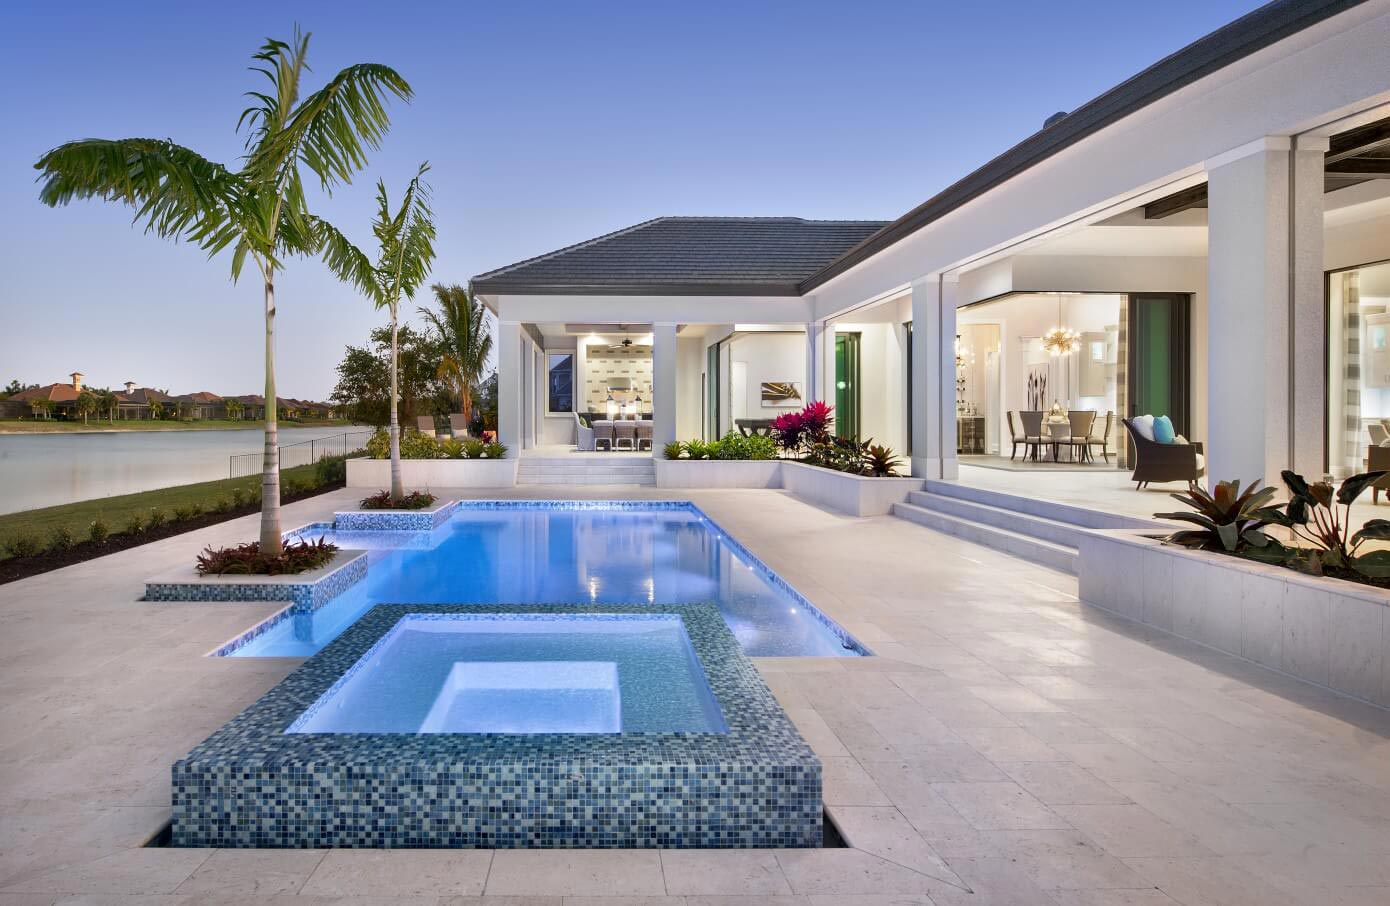 Lake View Home In Naples Florida Has Smart Home System